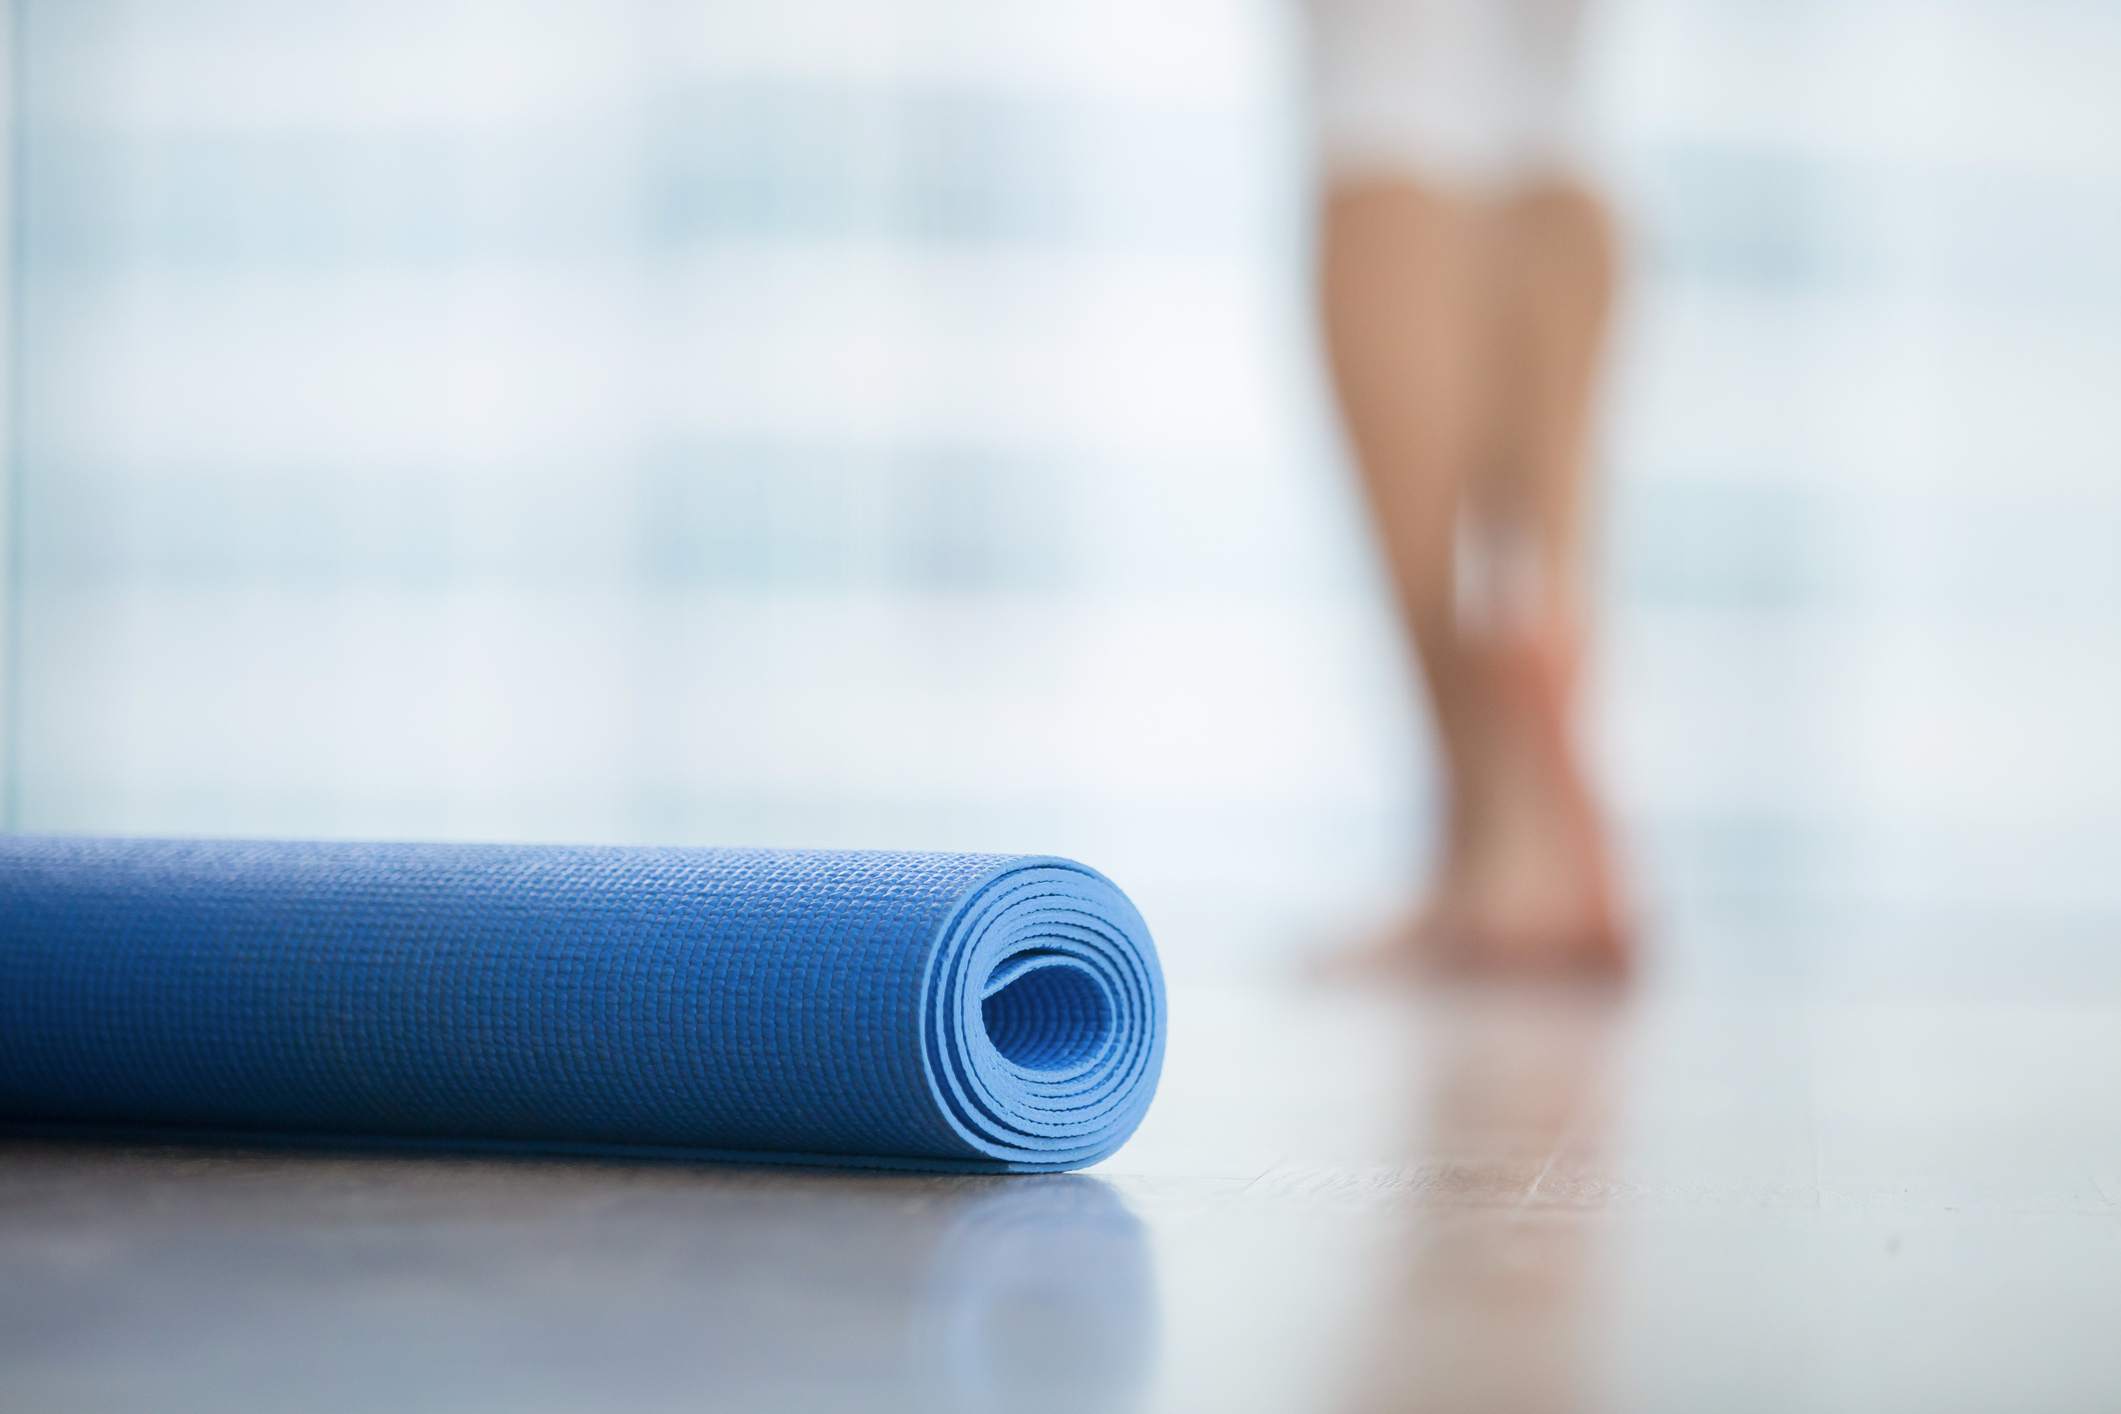 Adult studio classes - Active vinyasa flow with Michelle Gipner, Tuesday, 8/21 @ 6PM